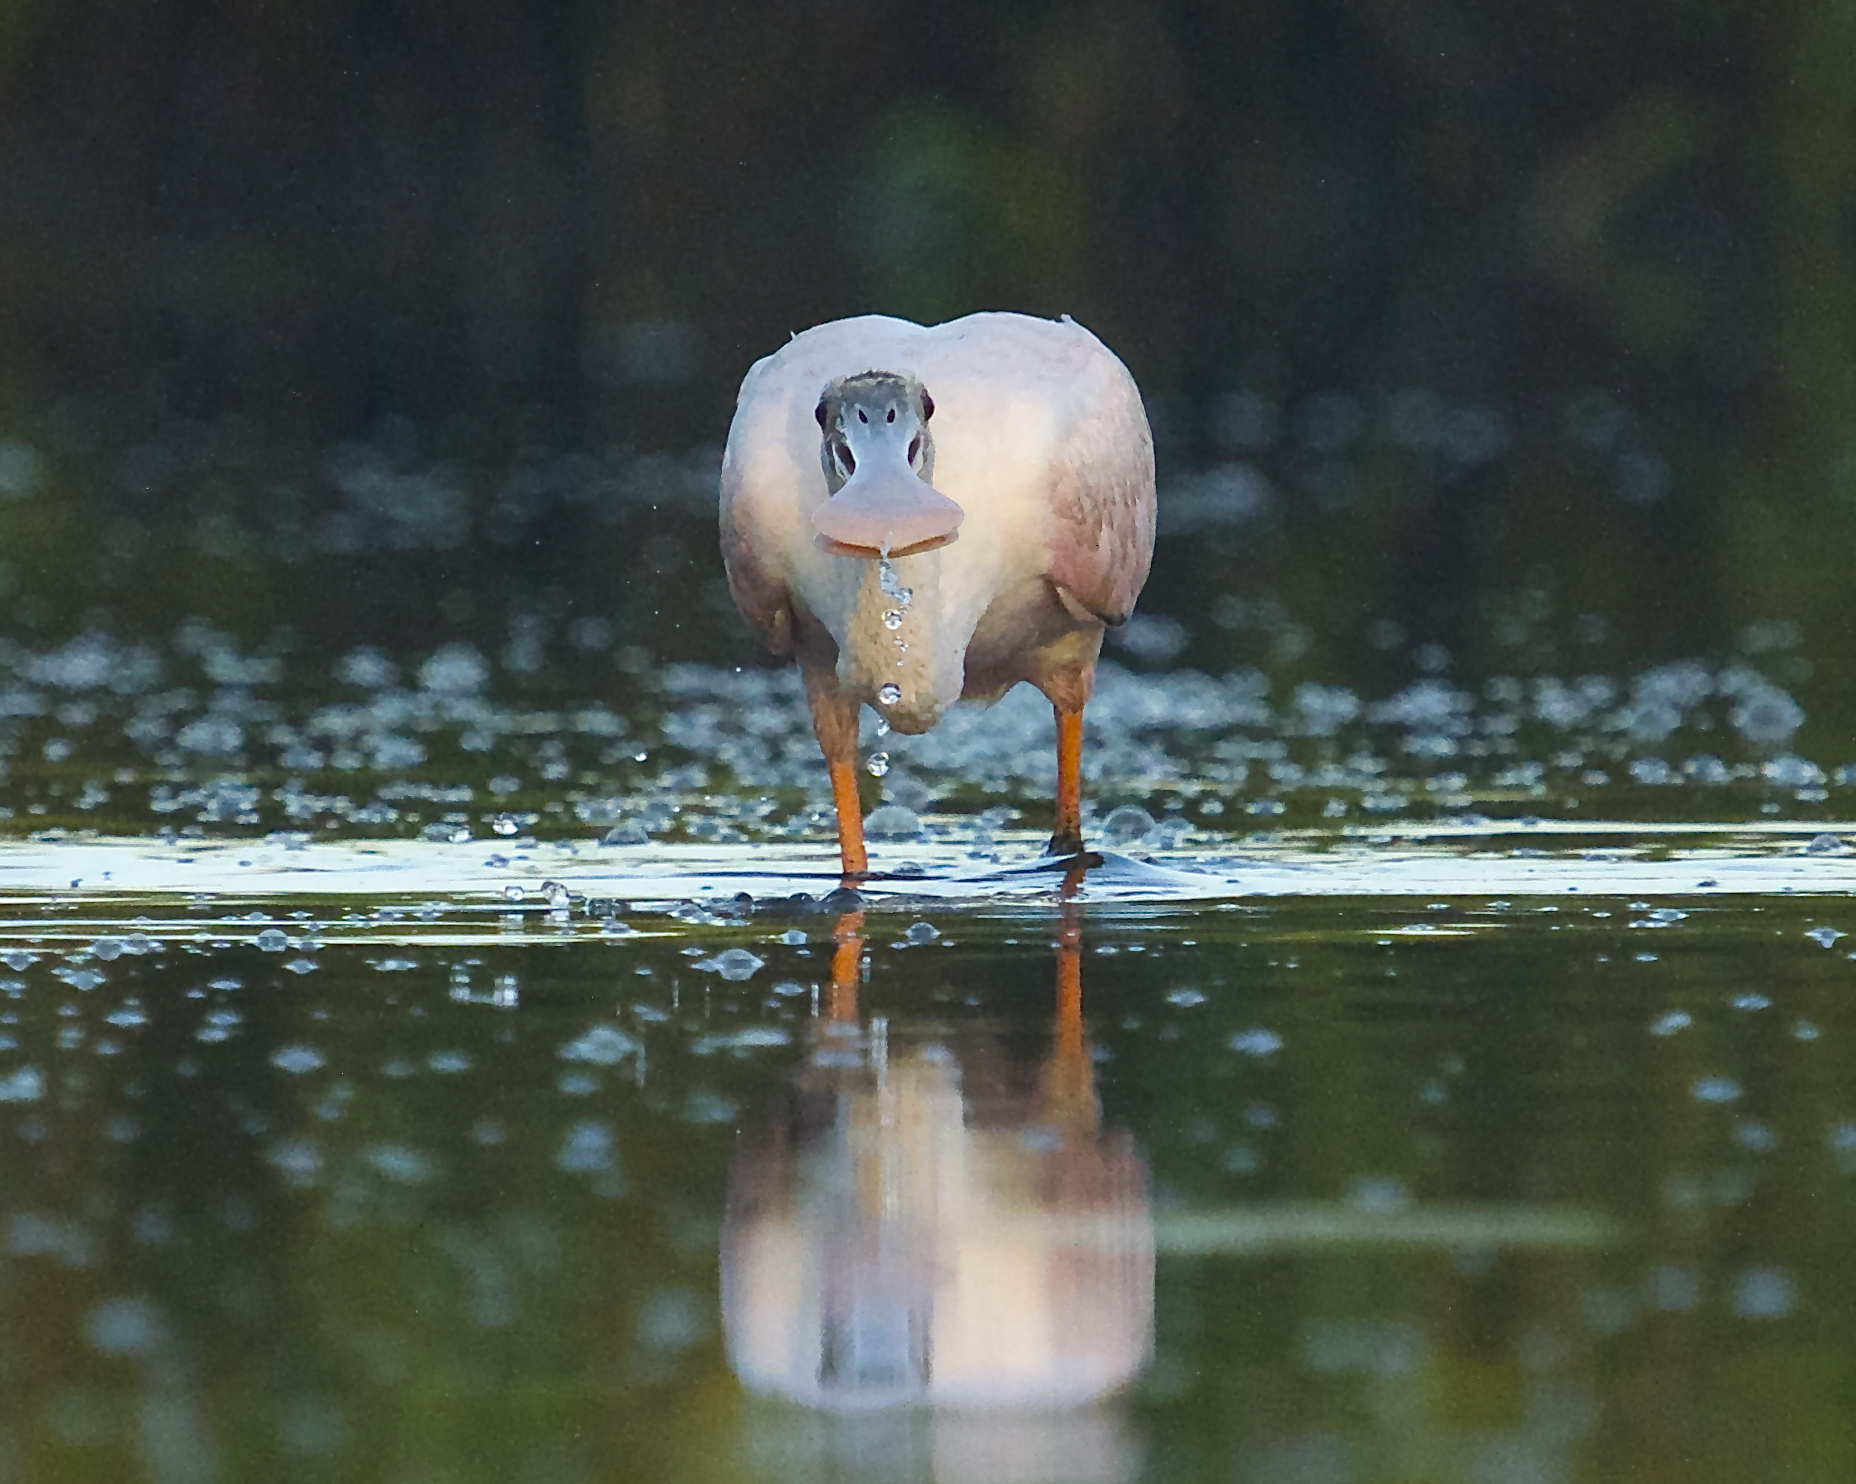 I am peering through my lens at a real perturbed looking pink bird..